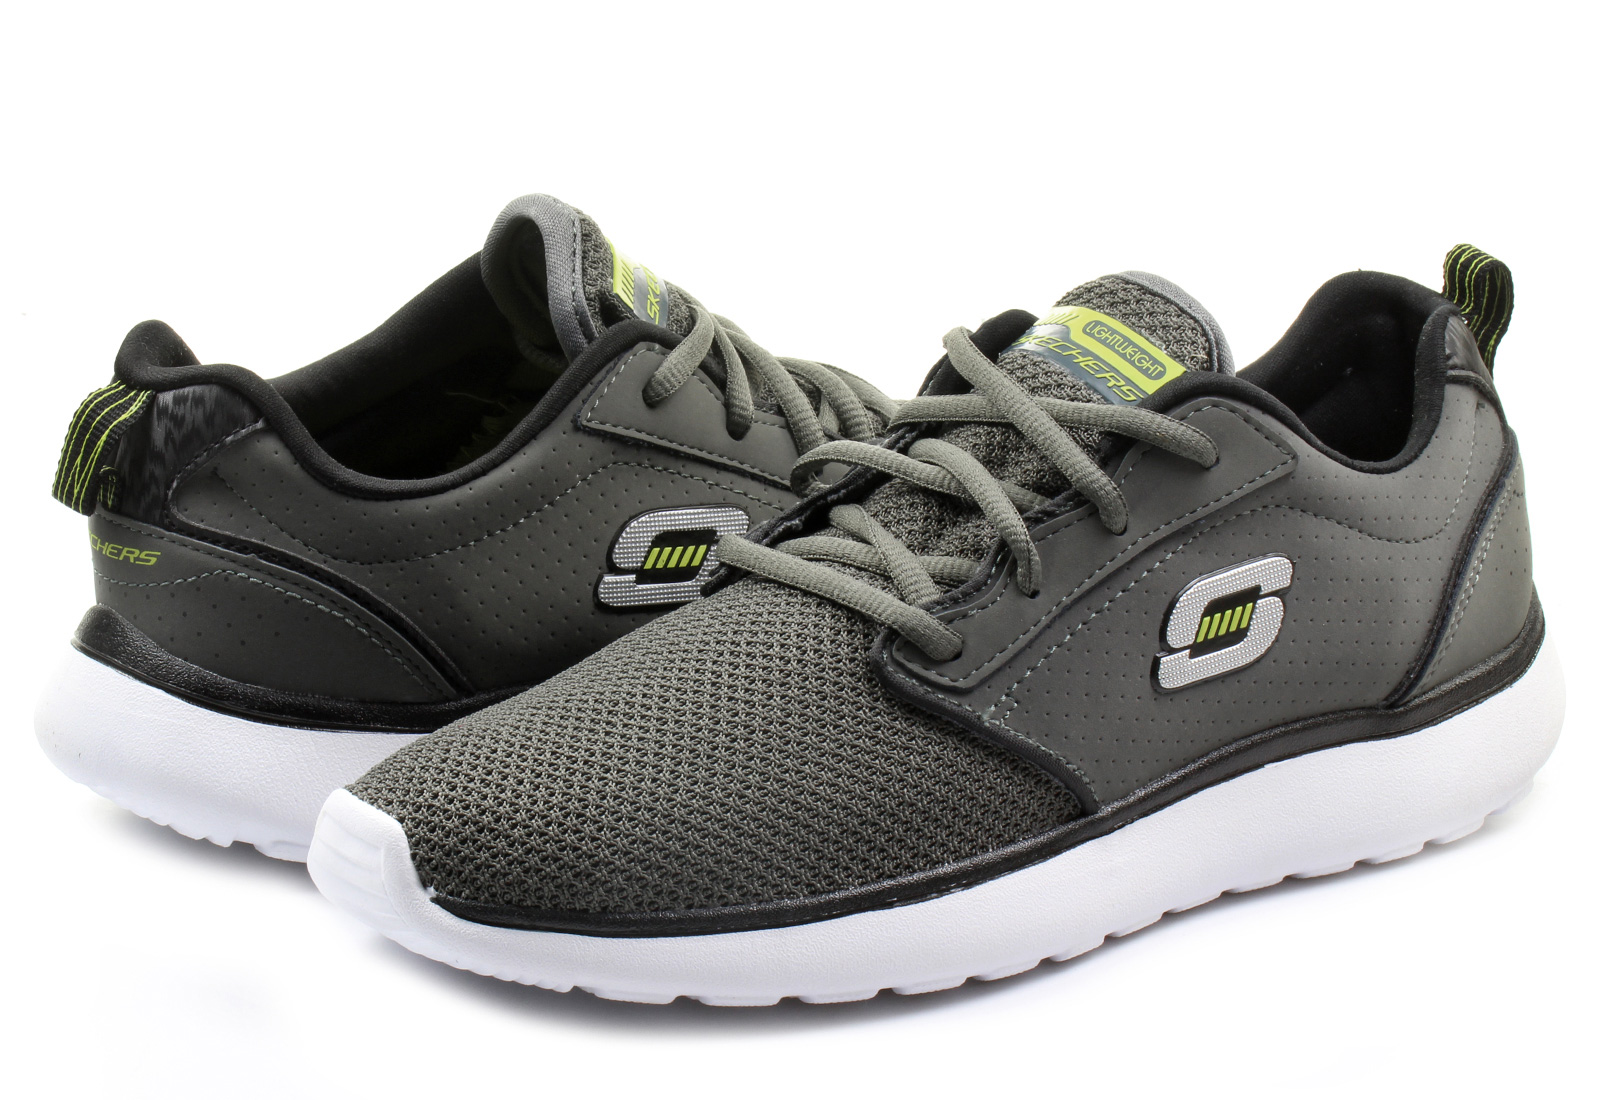 Skechers Shoes Counterpart